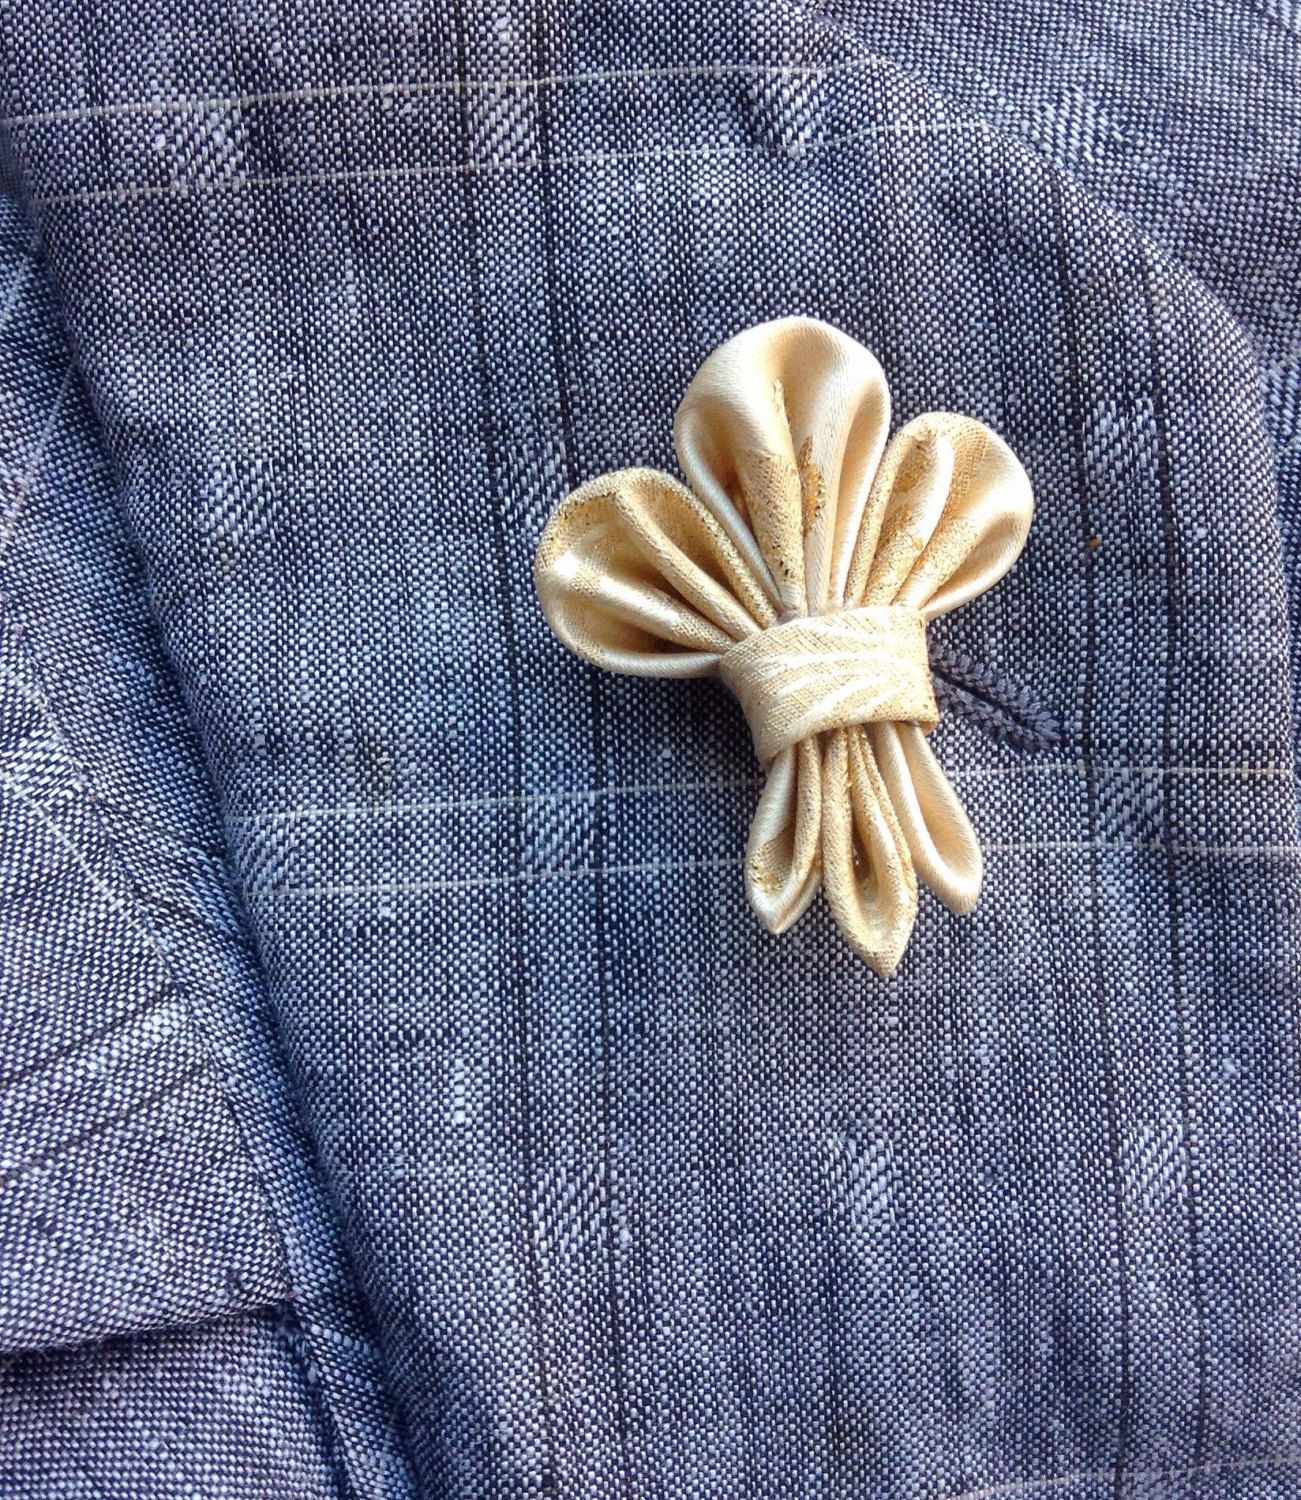 Mens Lapel Pin Flower Fleur De Lis Custom Lapel Pins Men Silk Boutonniere  Gold Lapel Gifts For Him Stocking Stuffer Kanzashi Pin Under 30 By  Exquisitelapel ...